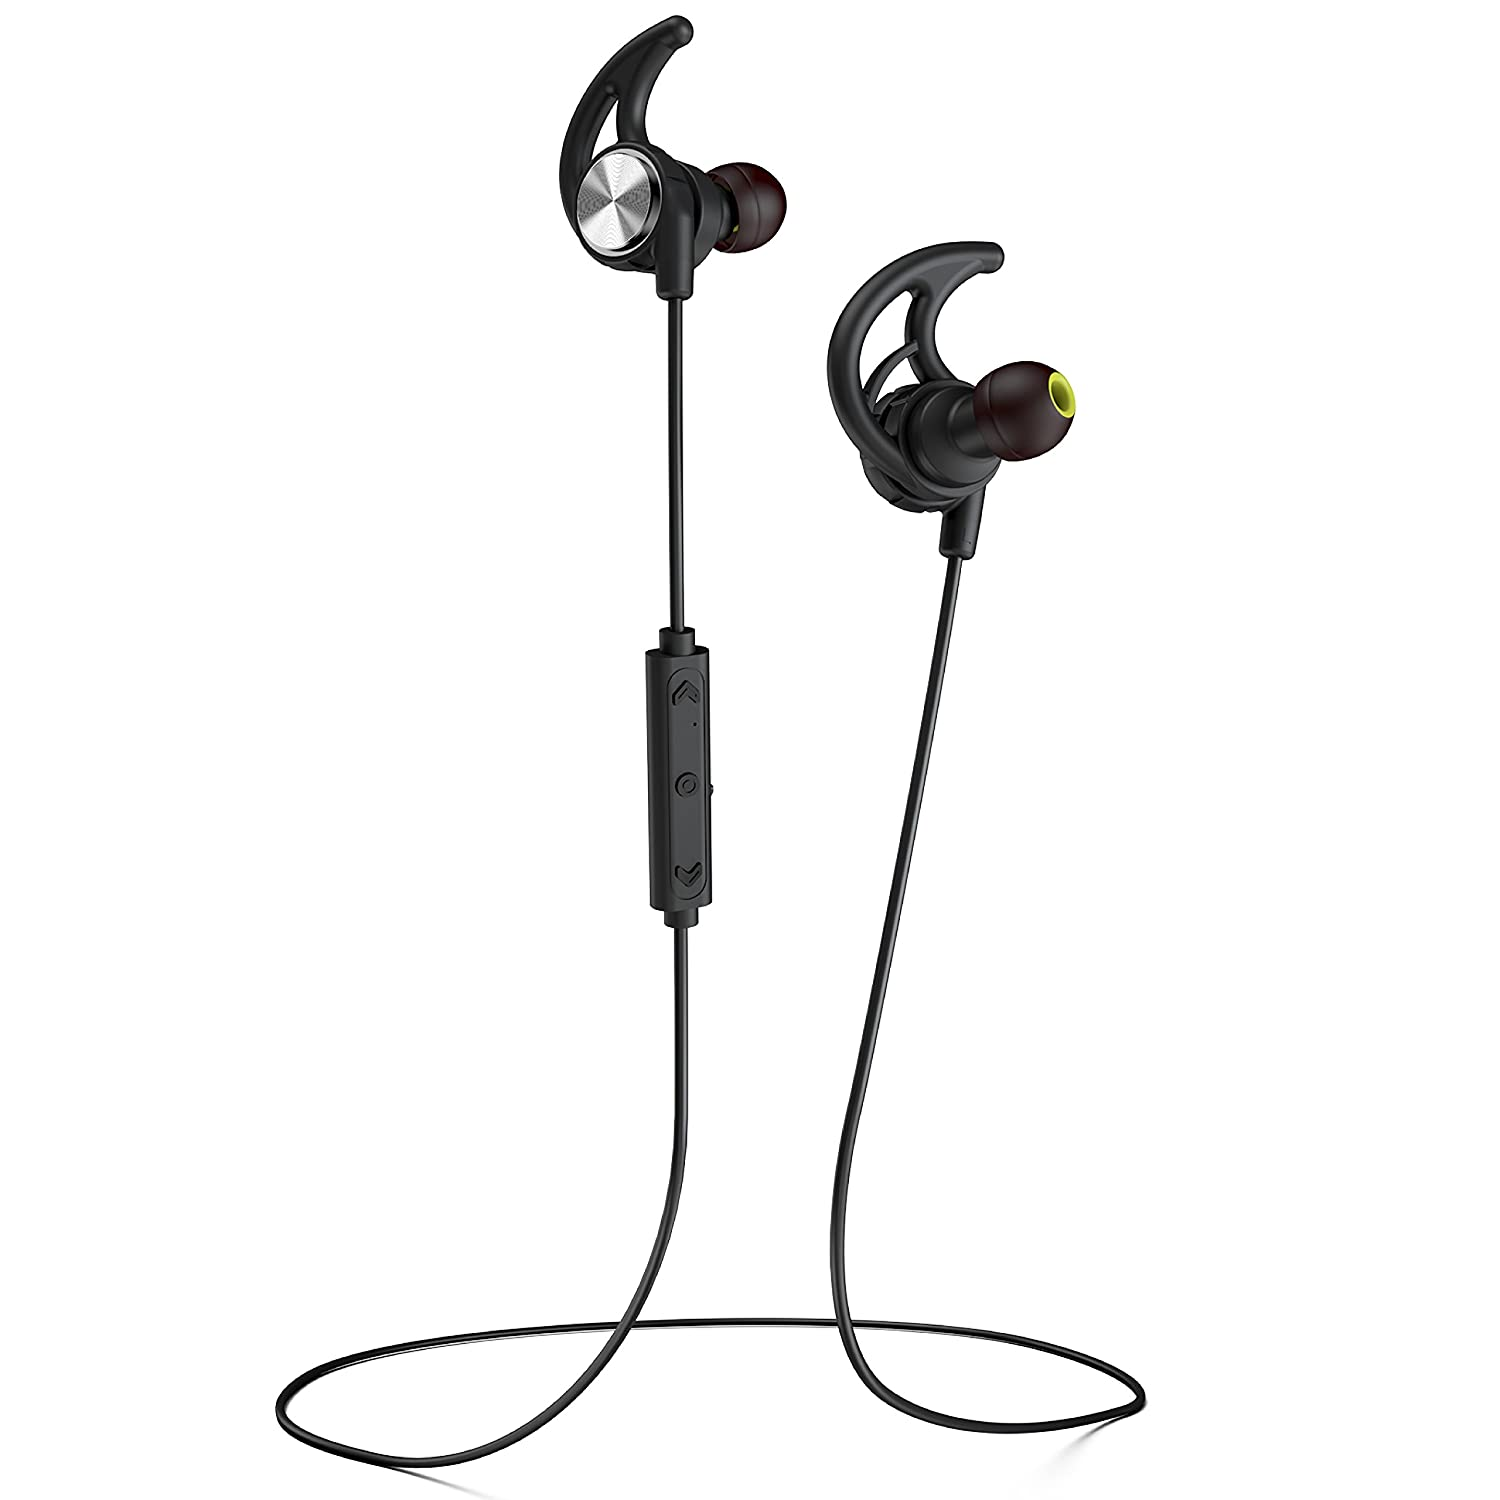 a9ec7204c5f Phaiser BHS-750 Bluetooth Headphones Runner Headset Sport Earphones with  Mic and Lifetime Sweatproof Guarantee - Wireless Earbuds for Running,  Blackout